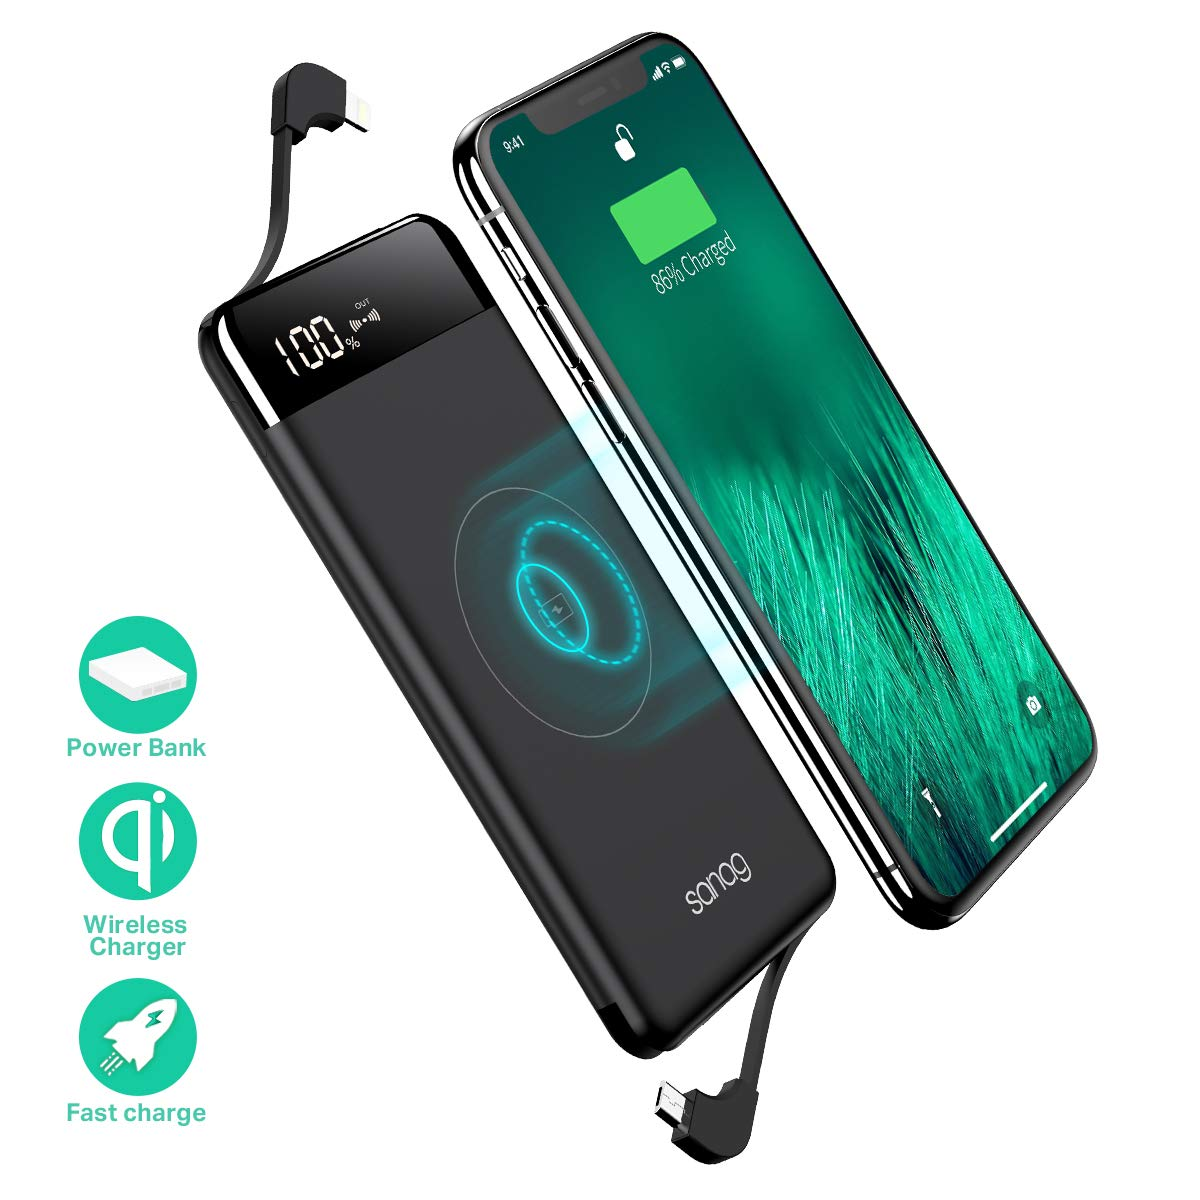 Wireless Portable Charger, Portable Charger, SANAG 10000mAh External Battery Pack